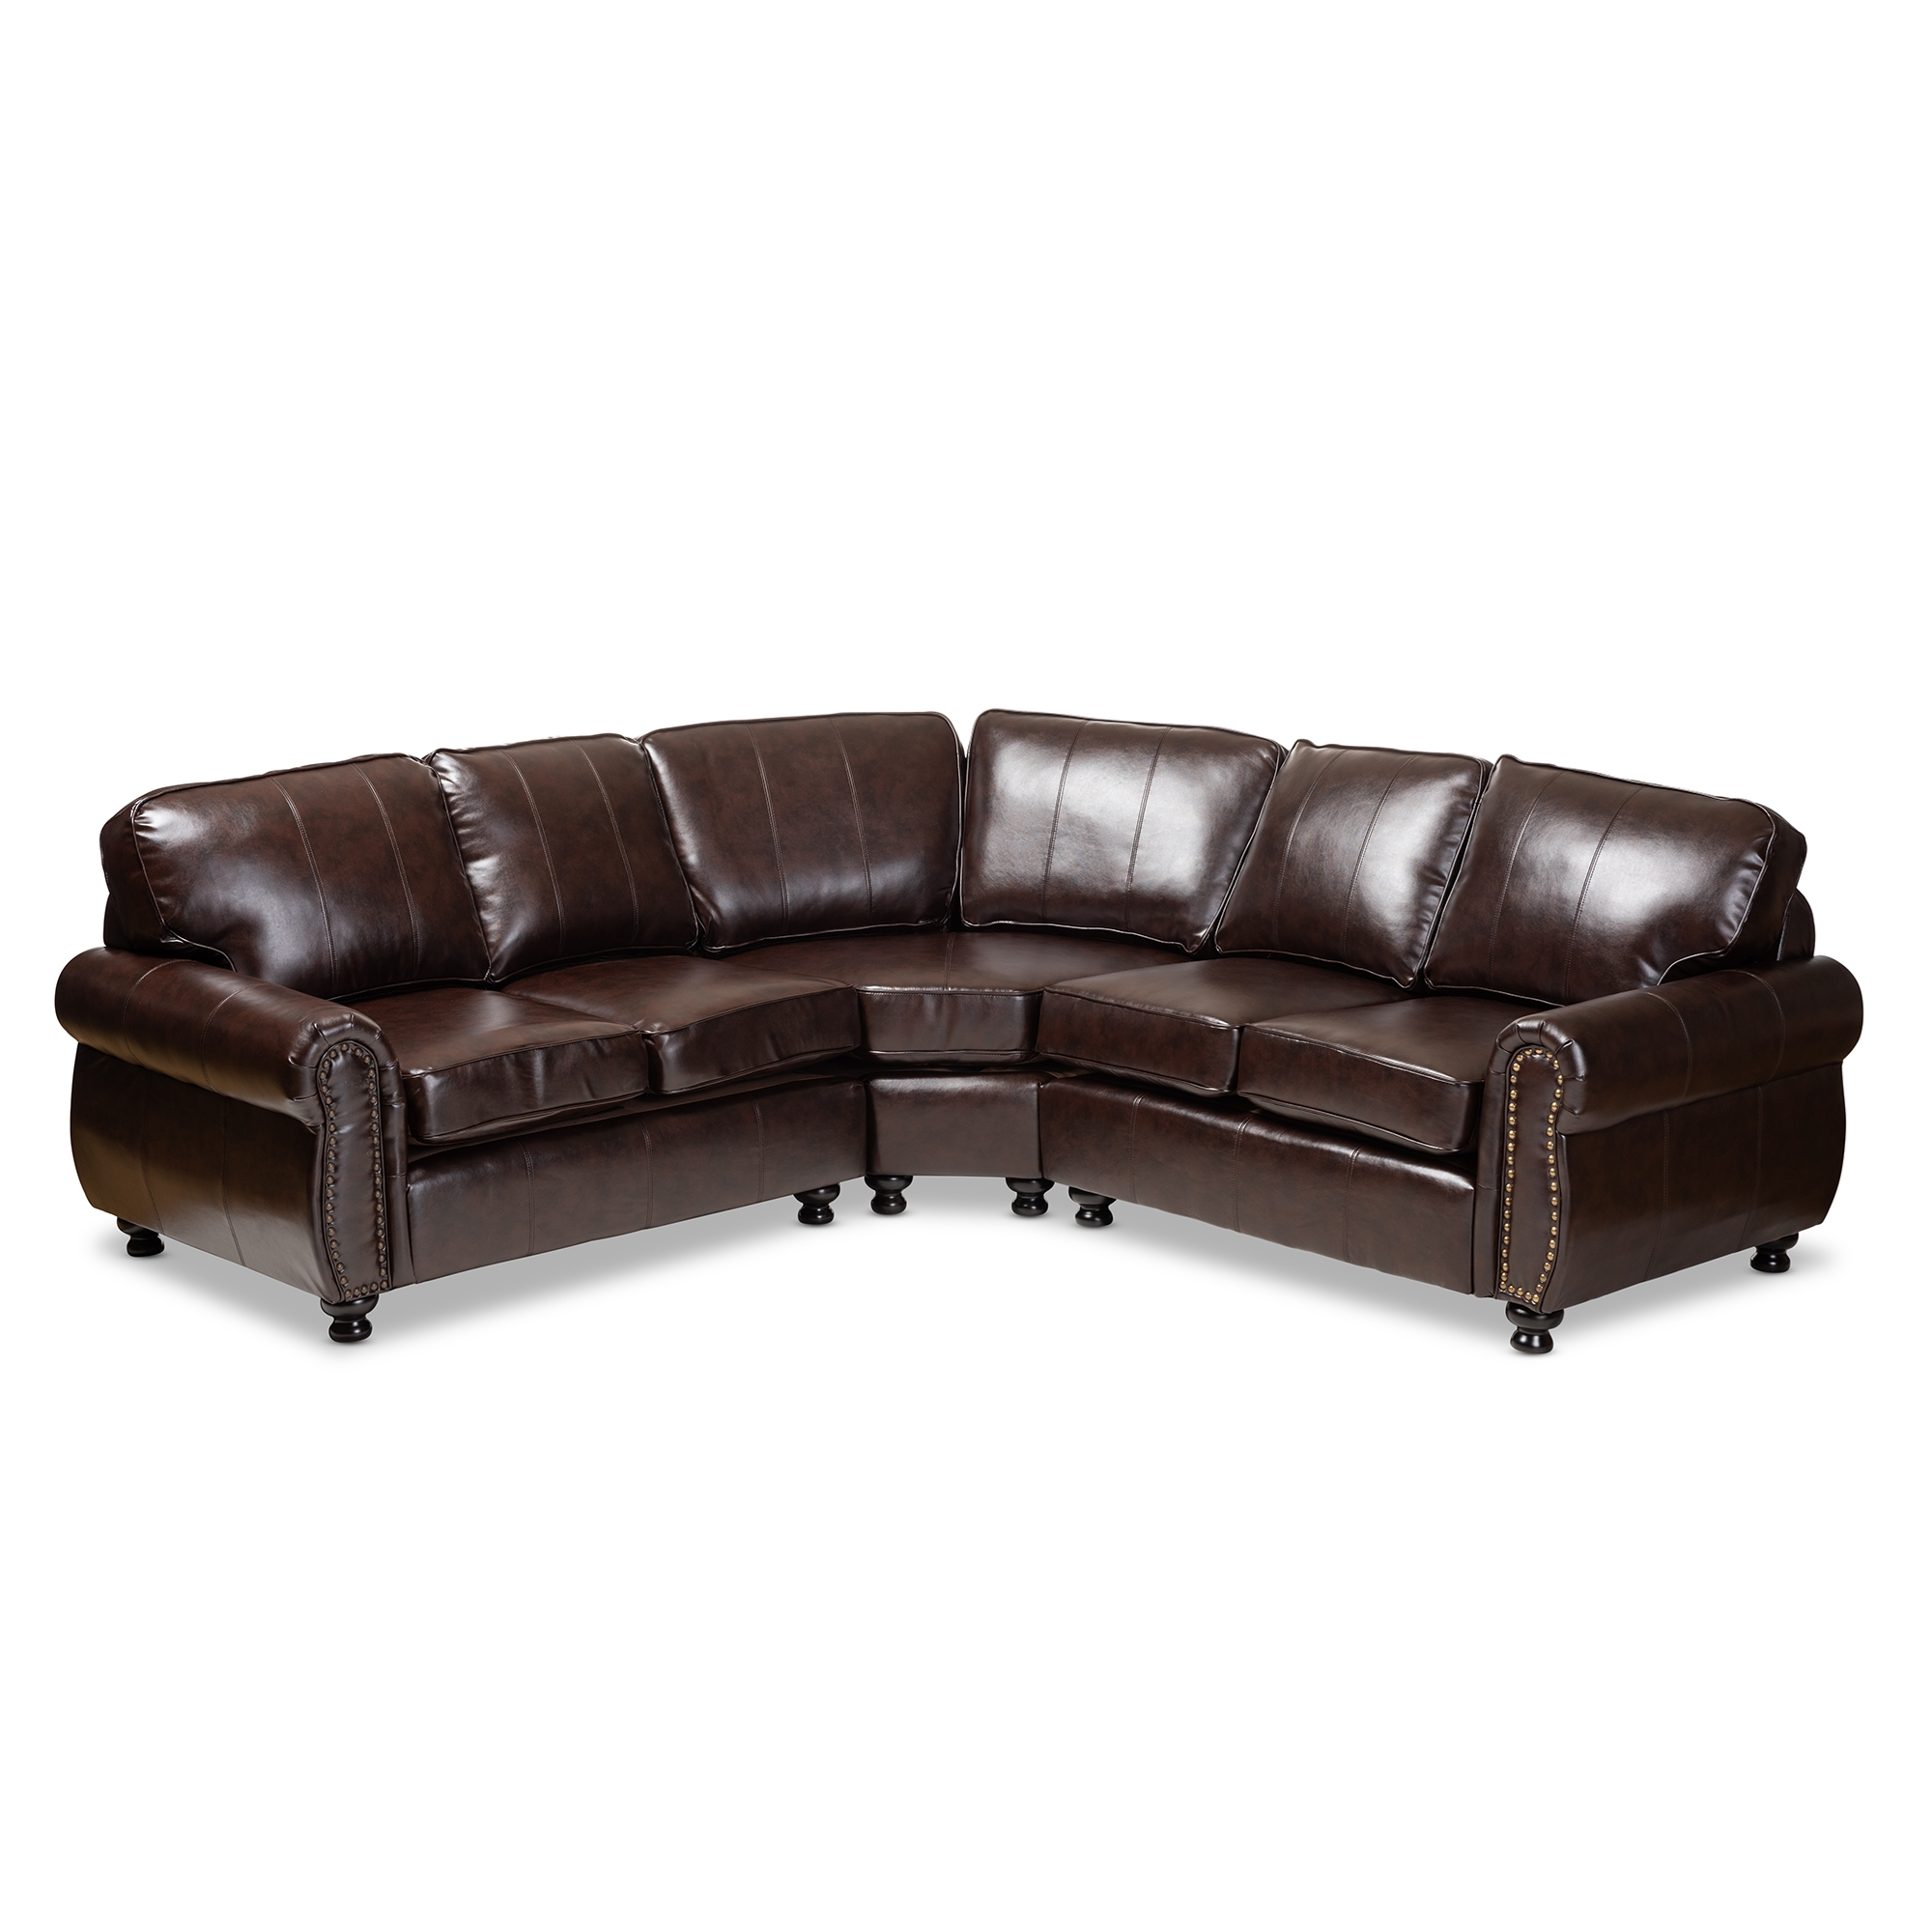 Baxton Studio Hammond Modern And Contemporary Dark Brown Faux Leather Sectional  Sofa Affordable Modern Furniture In